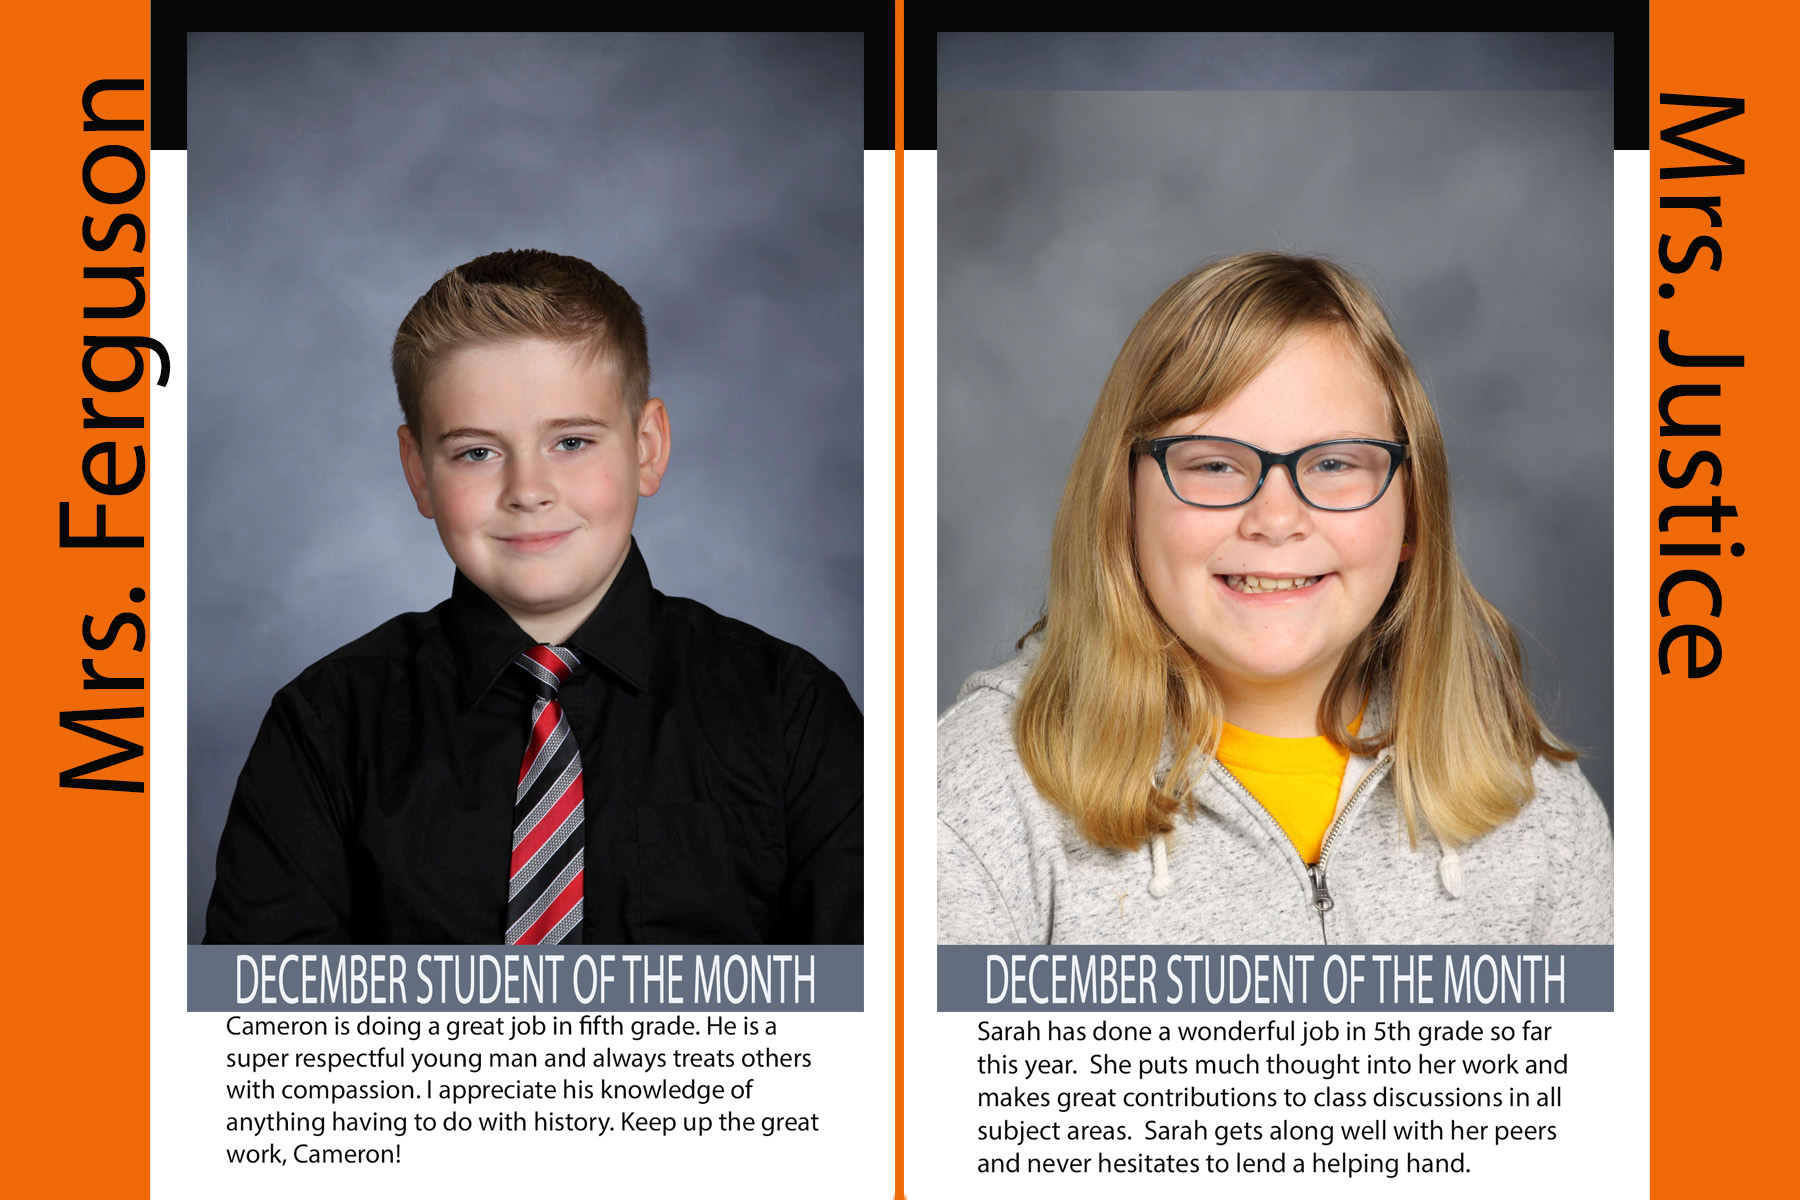 Fifth GRade December Student of the Month